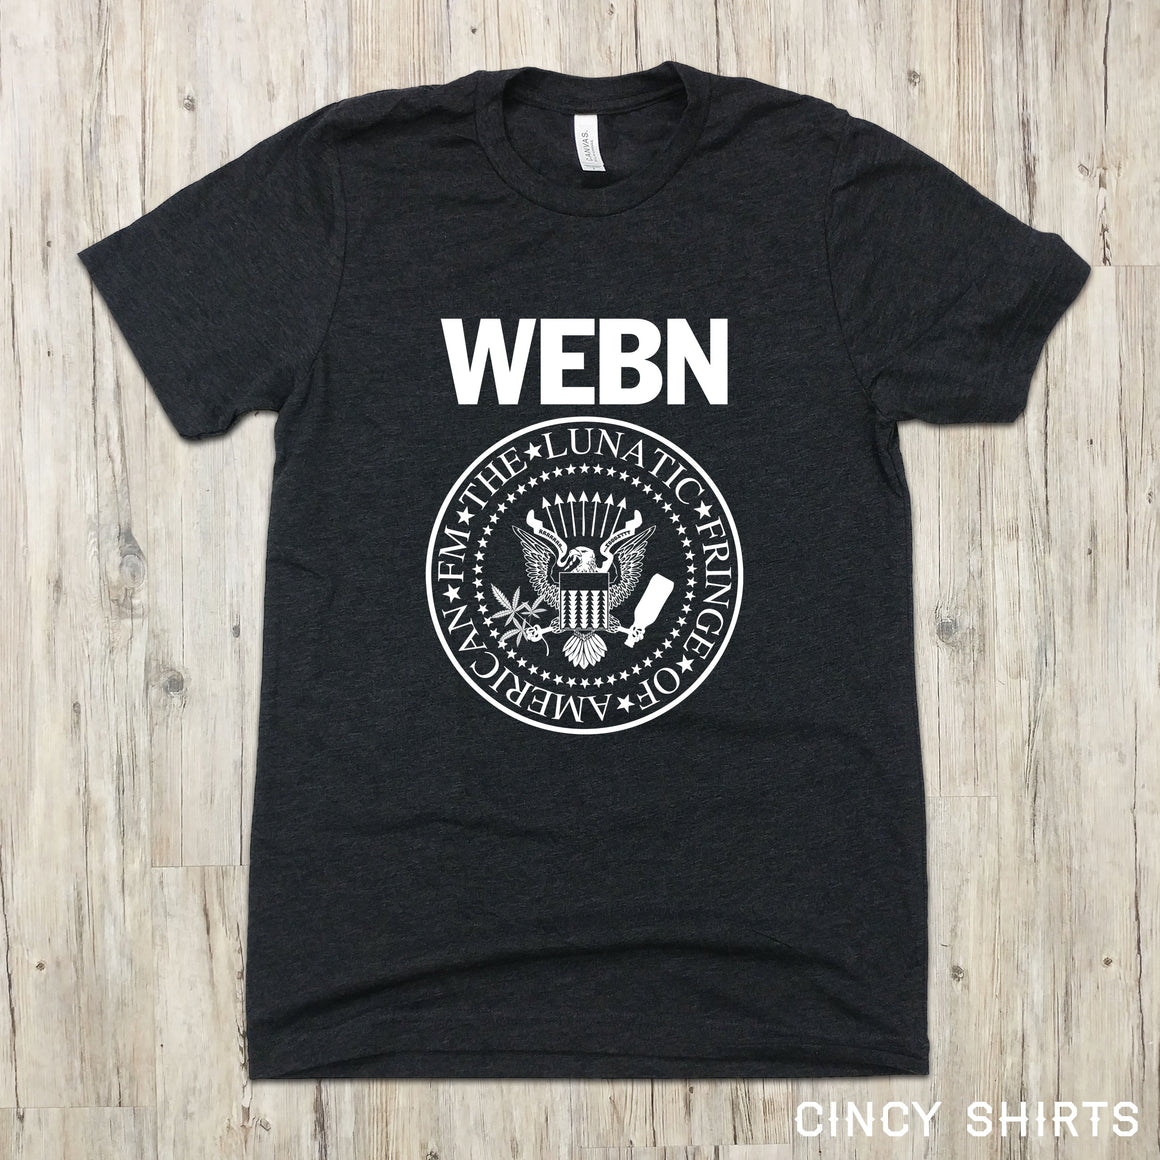 WEBN Ramones - Cincy Shirts